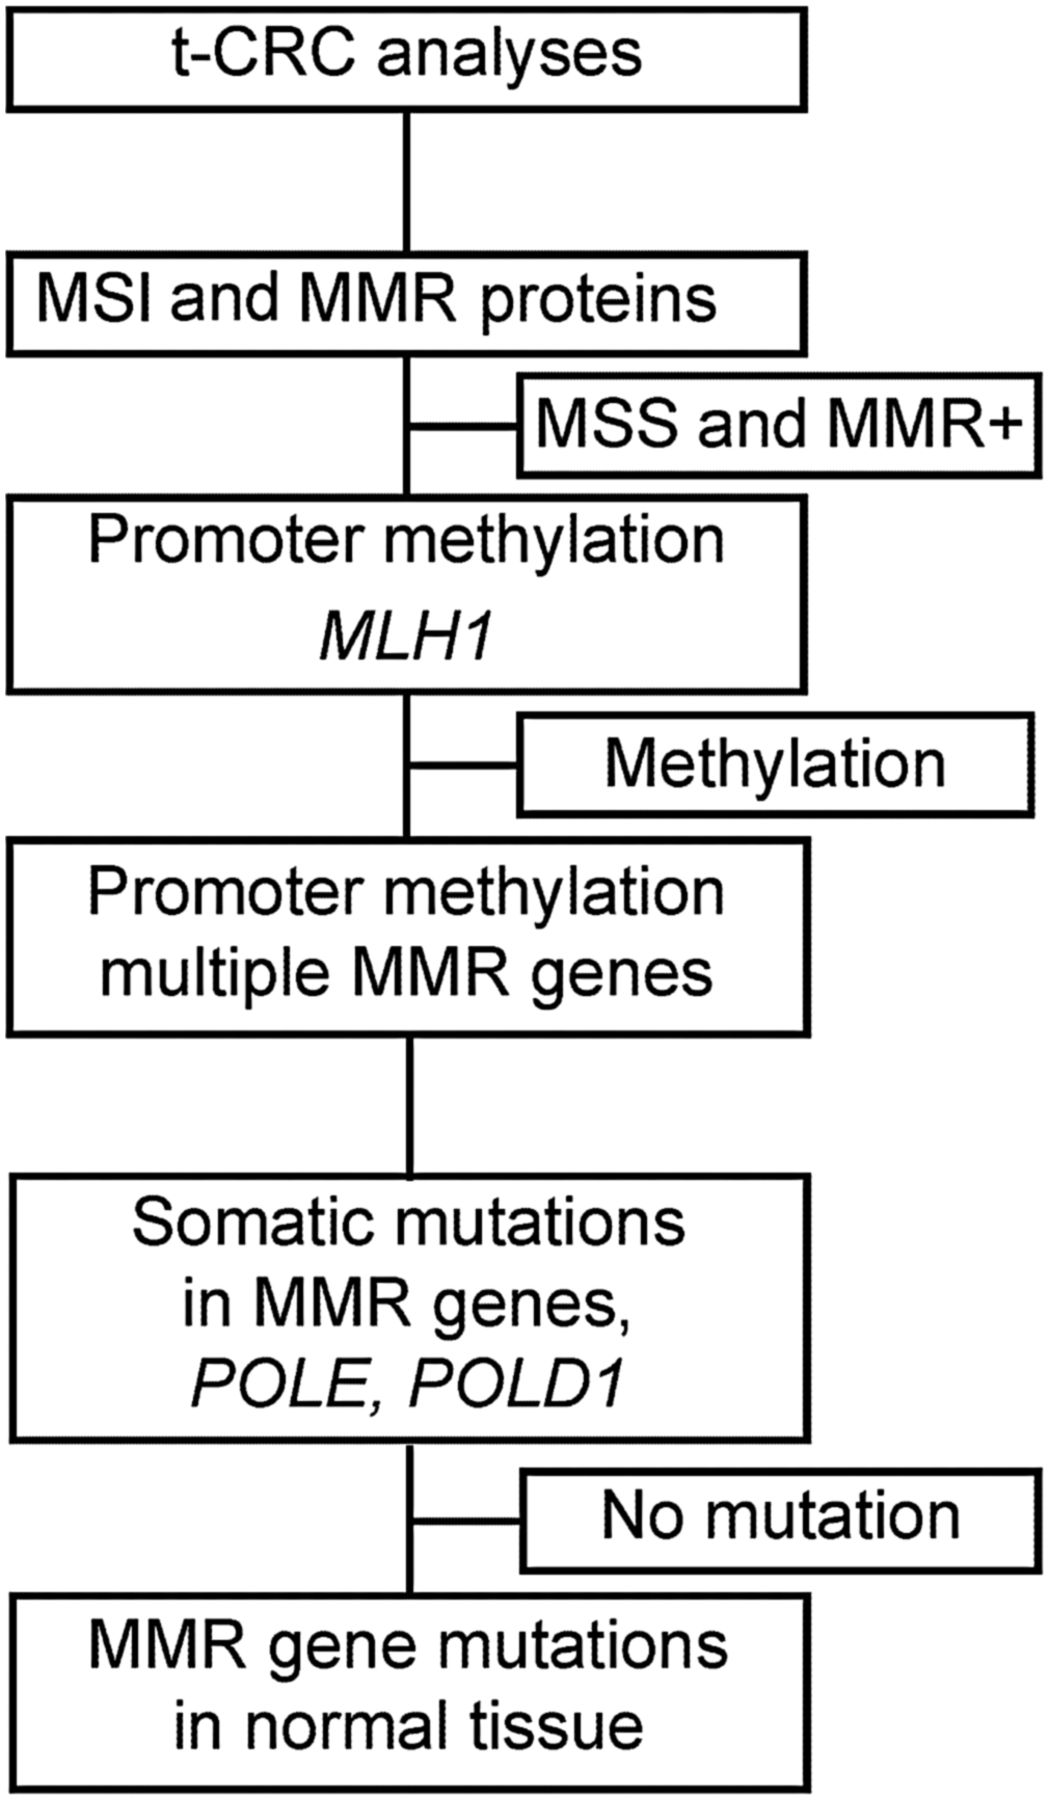 Double Somatic Mutations In Mismatch Repair Genes Are Frequent In Colorectal Cancer After Hodgkin S Lymphoma Treatment Gut